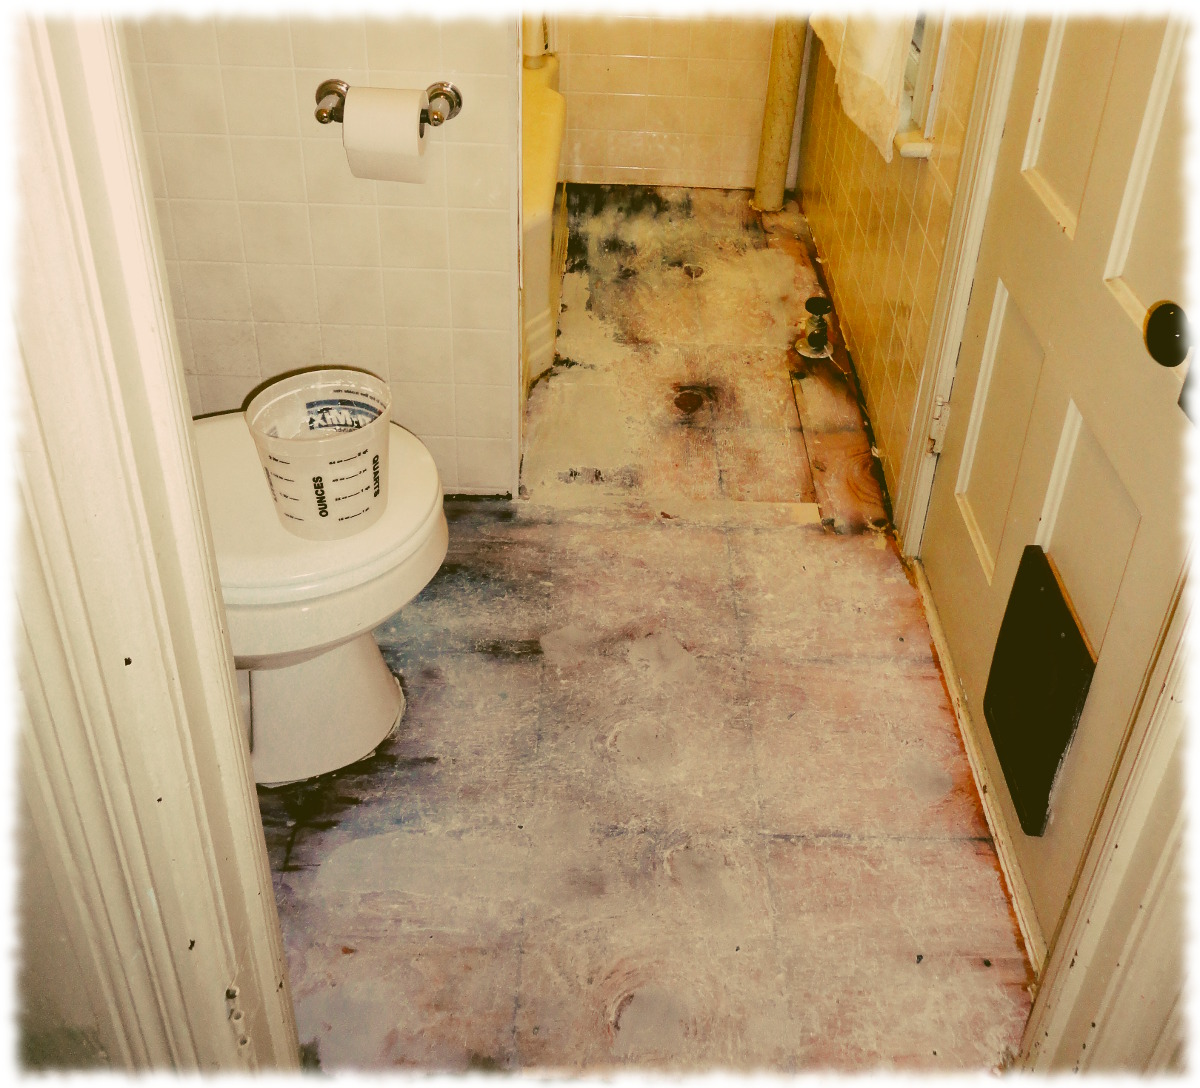 Bathroom Floor Tiles Sealing : Bathroom improvements the curtis home website